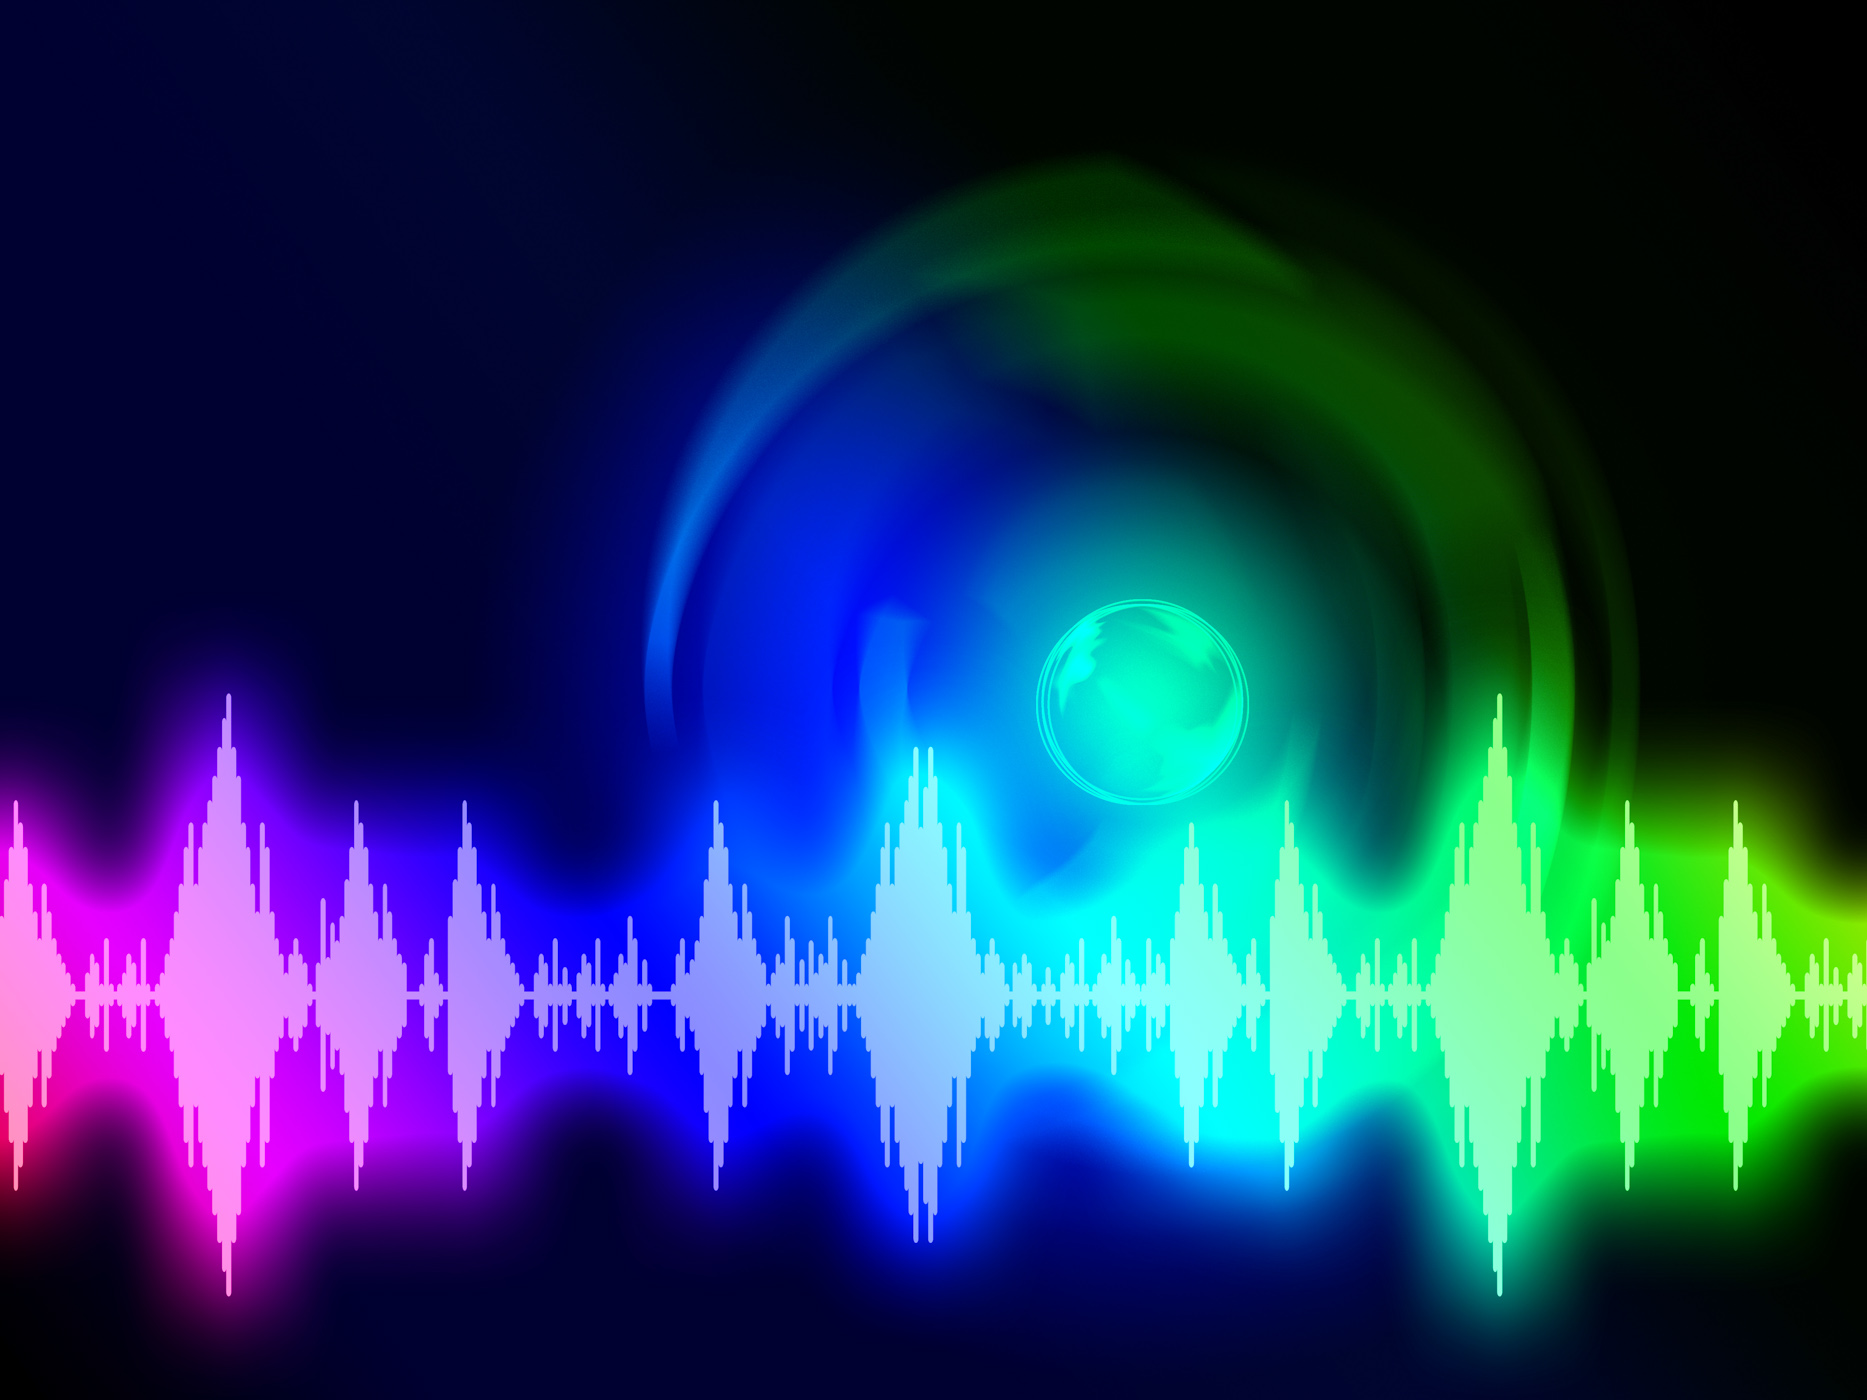 Sound wave background shows audio spectrum or energy photo